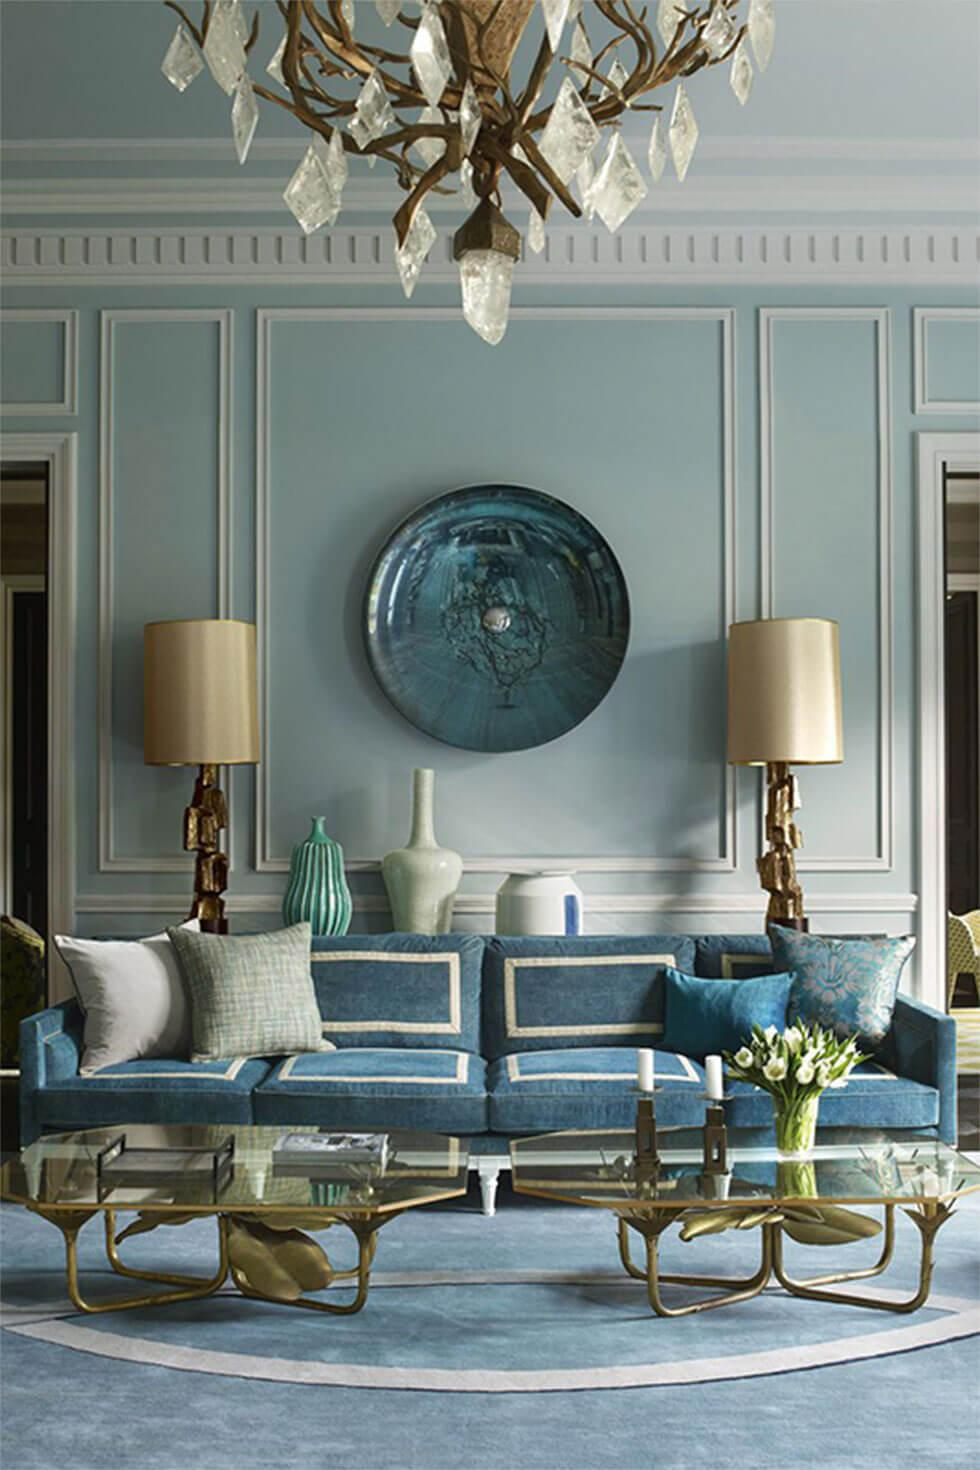 Light blue living room walls in a vintage-inspired classic home.